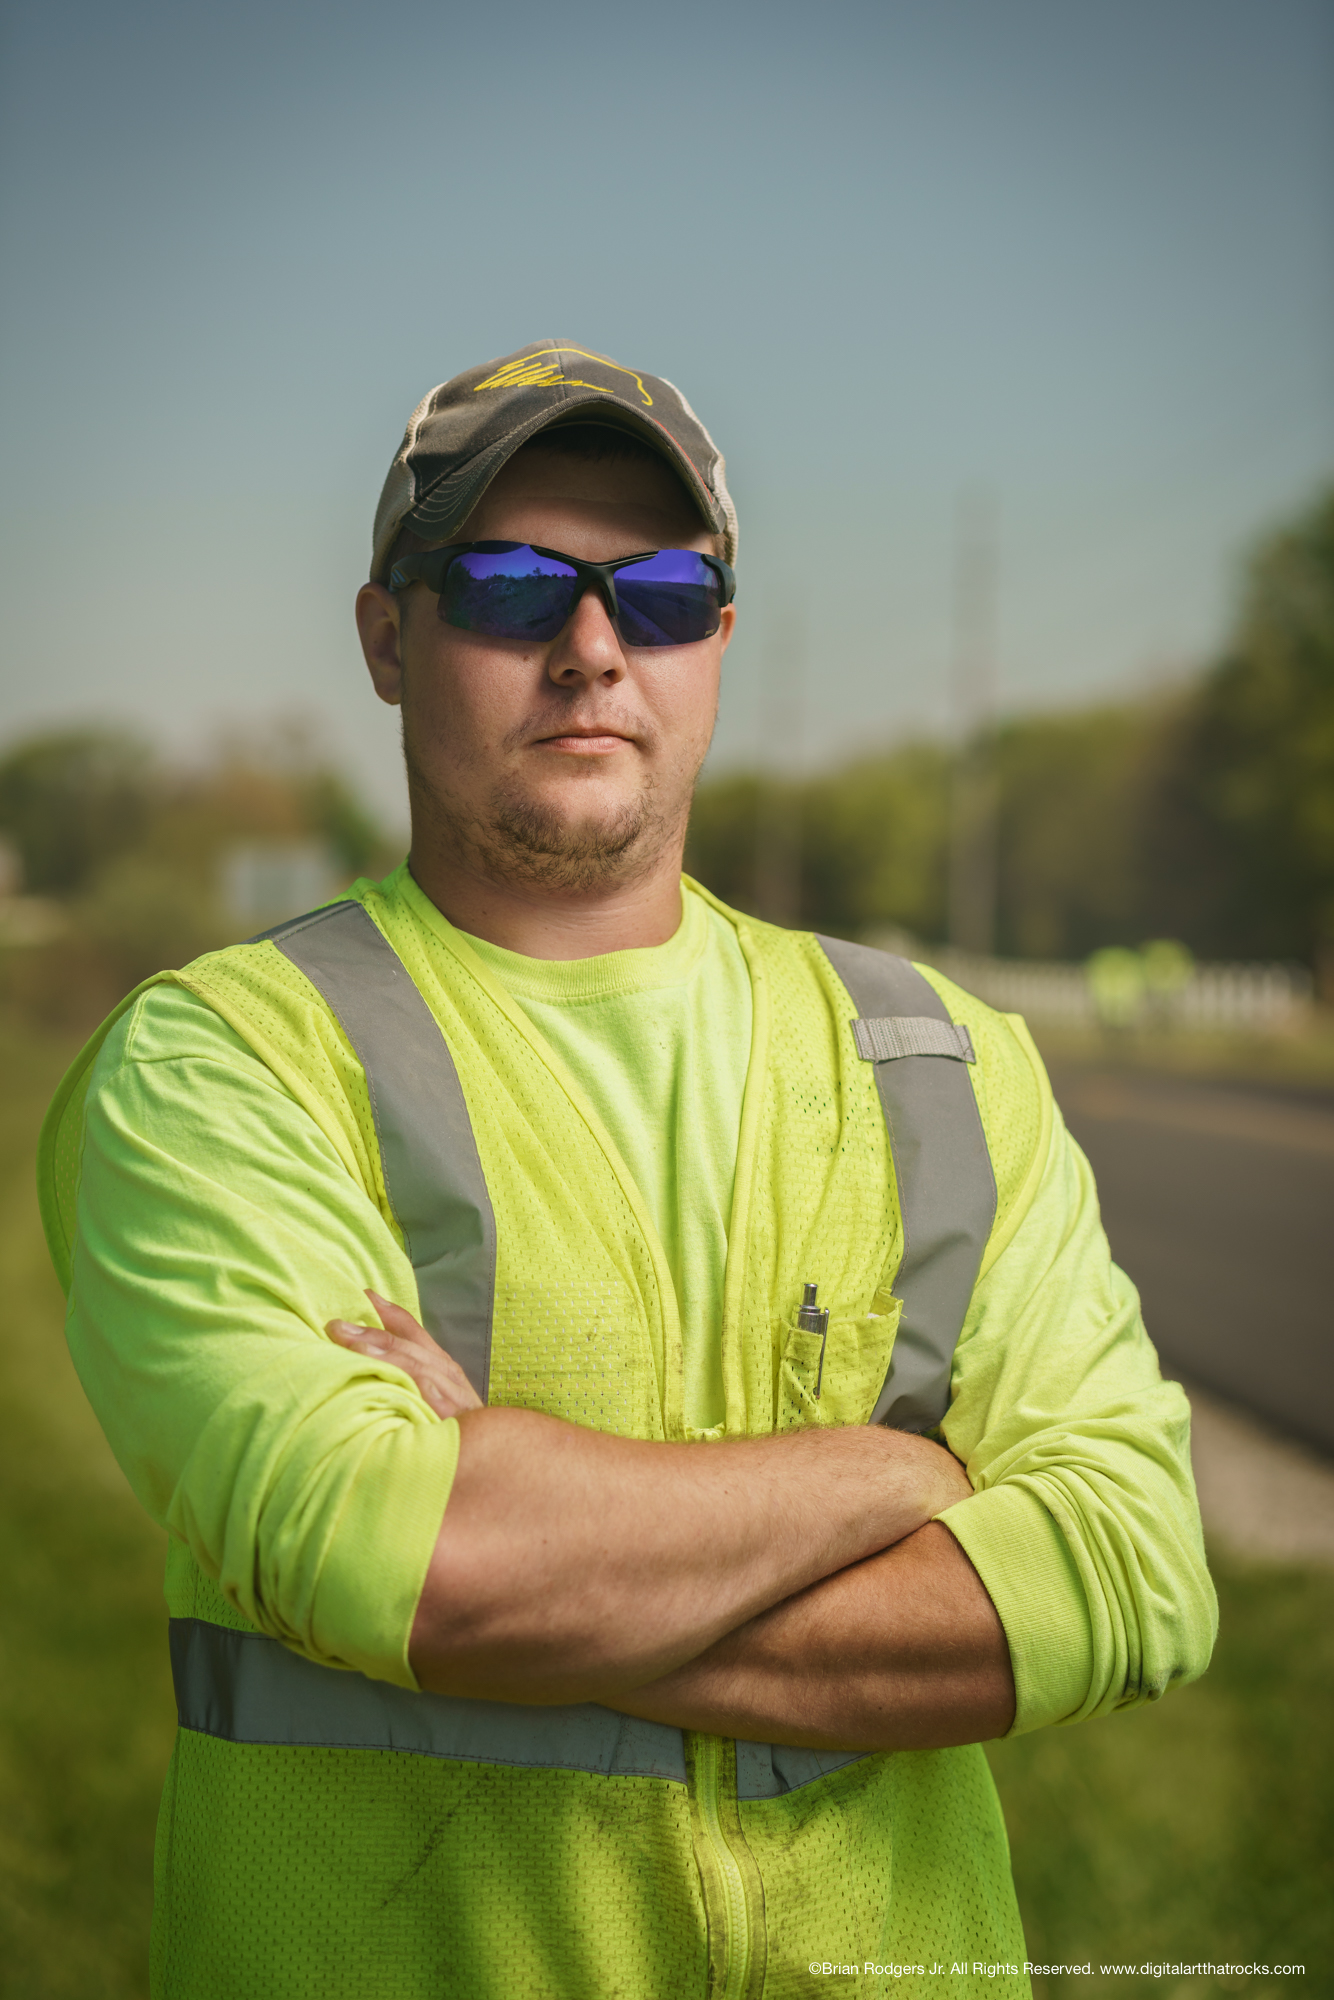 asphalt-worker-commercial-portrait-brian-rodgers-jr-digital-art-that-rocks-indiana